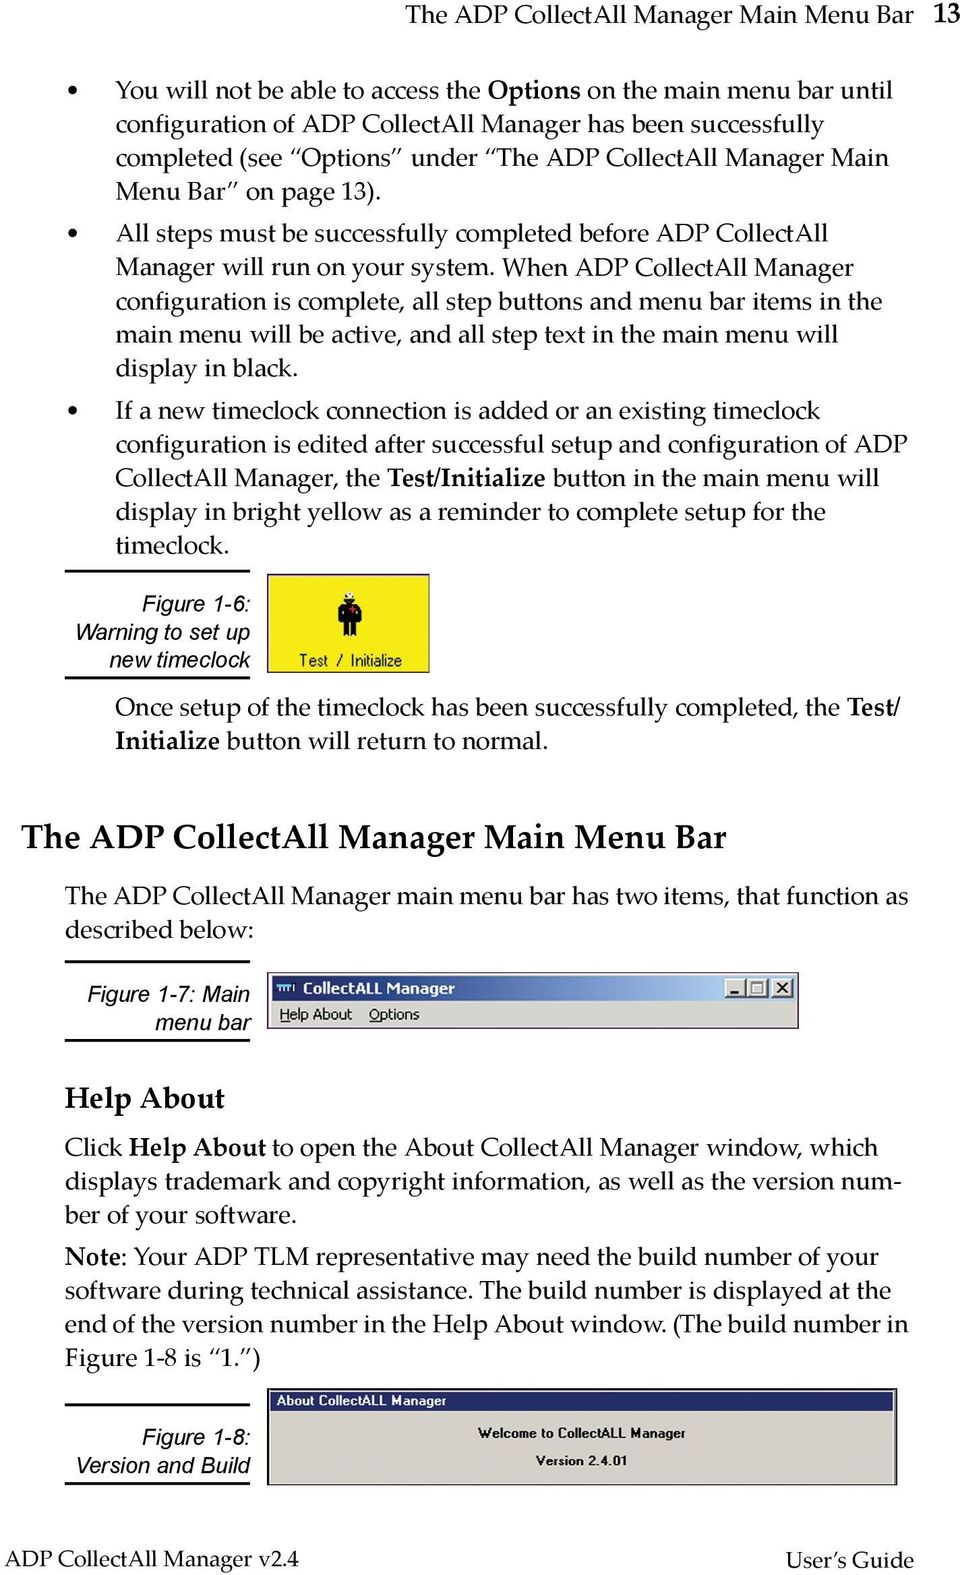 When ADP CollectAll Manager configuration is complete, all step buttons and menu bar items in the main menu will be active, and all step text in the main menu will display in black.